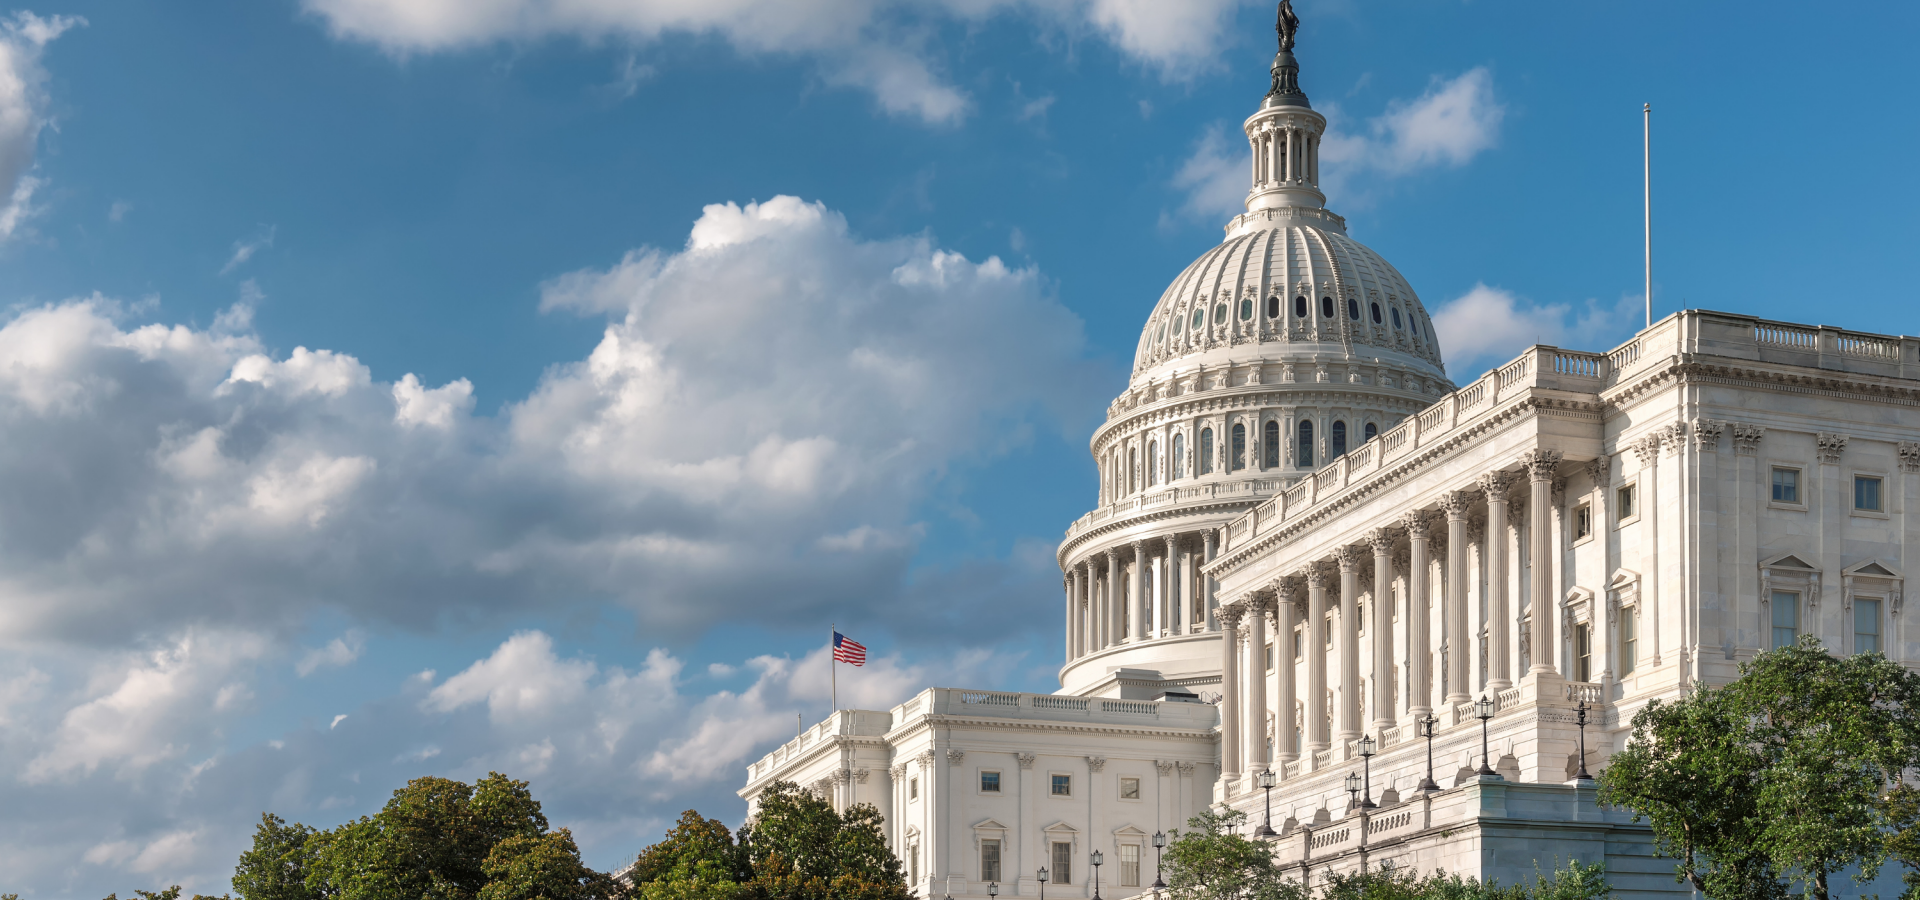 A photo of the front of the United States Capitol from the right side.